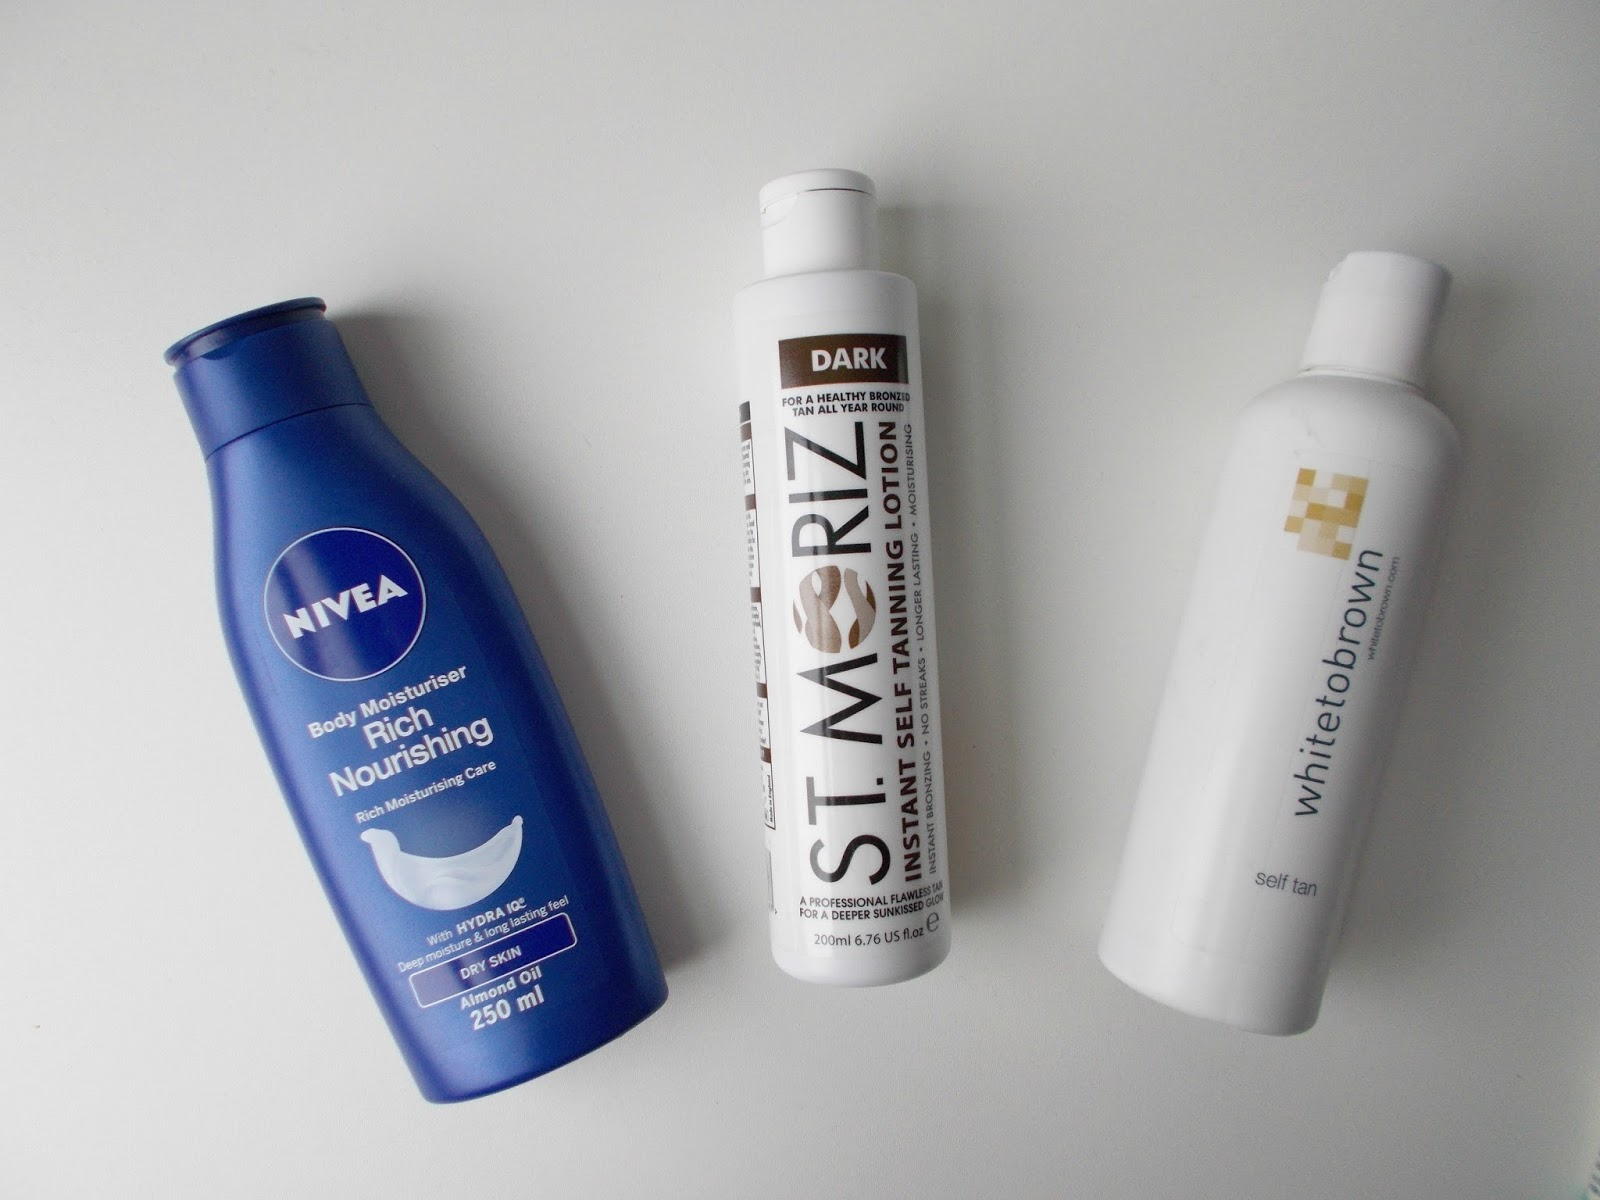 product empties bodycare nivea white to brown st moriz tan